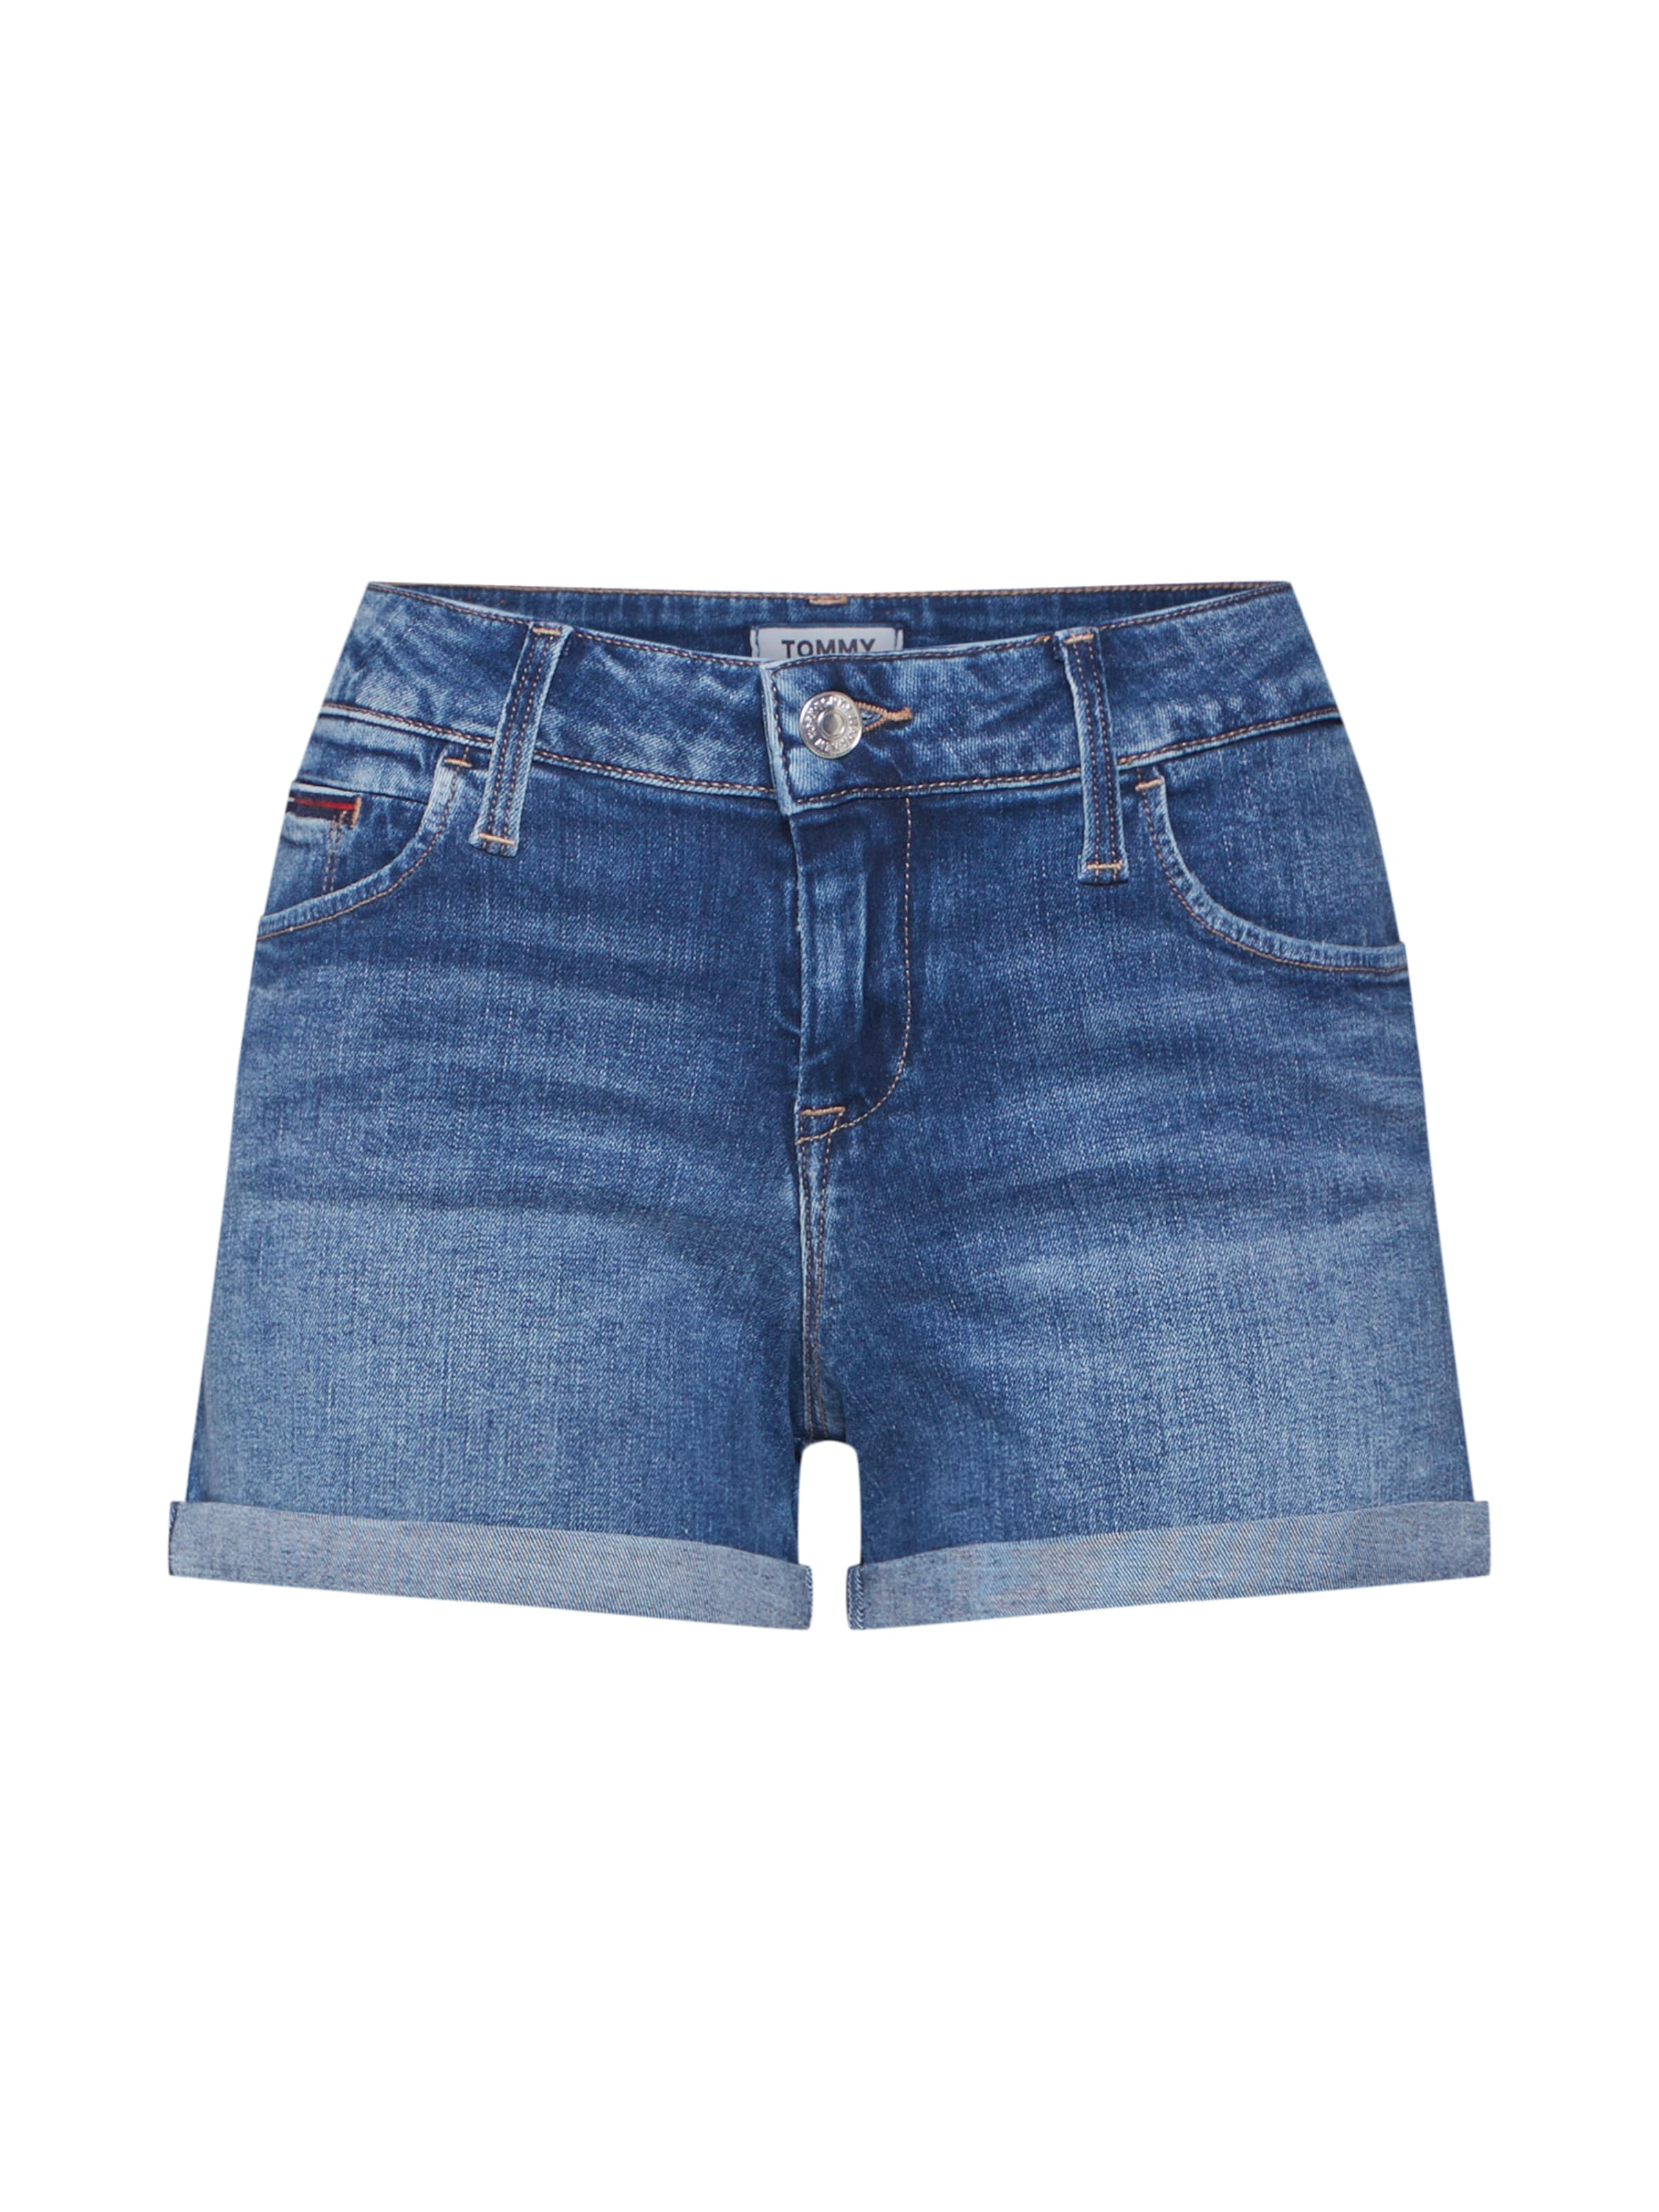 Shorts In Tommy Blue Jeans Denim kliZwXuOPT